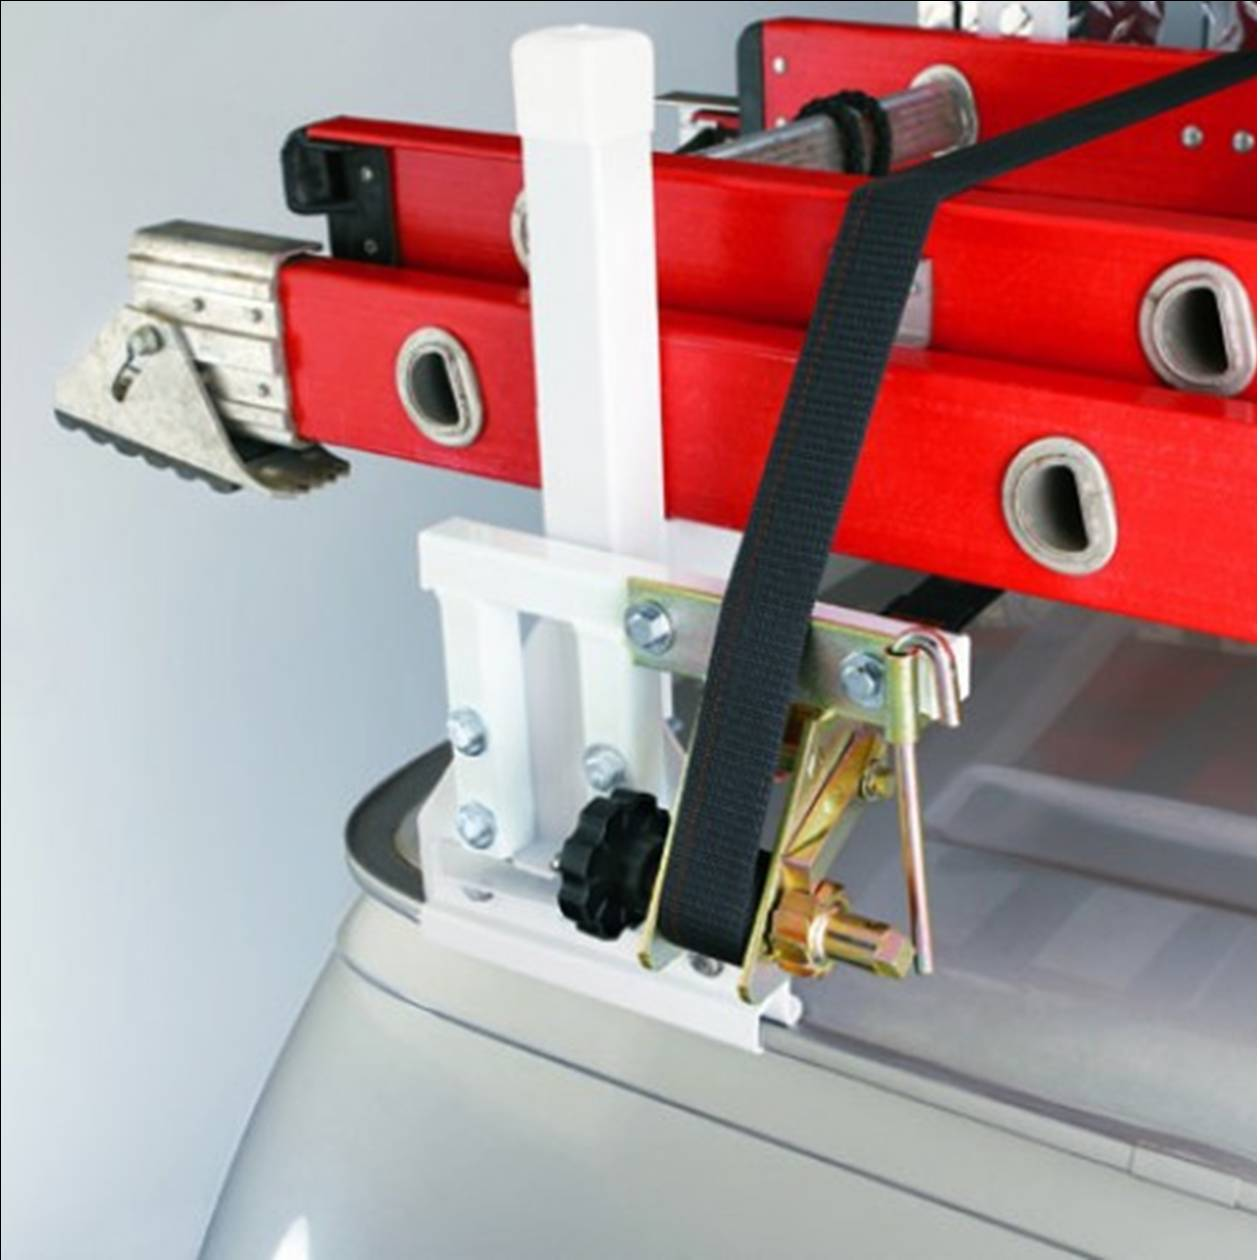 mounting adapter and mounting for weather guard van racks model 5